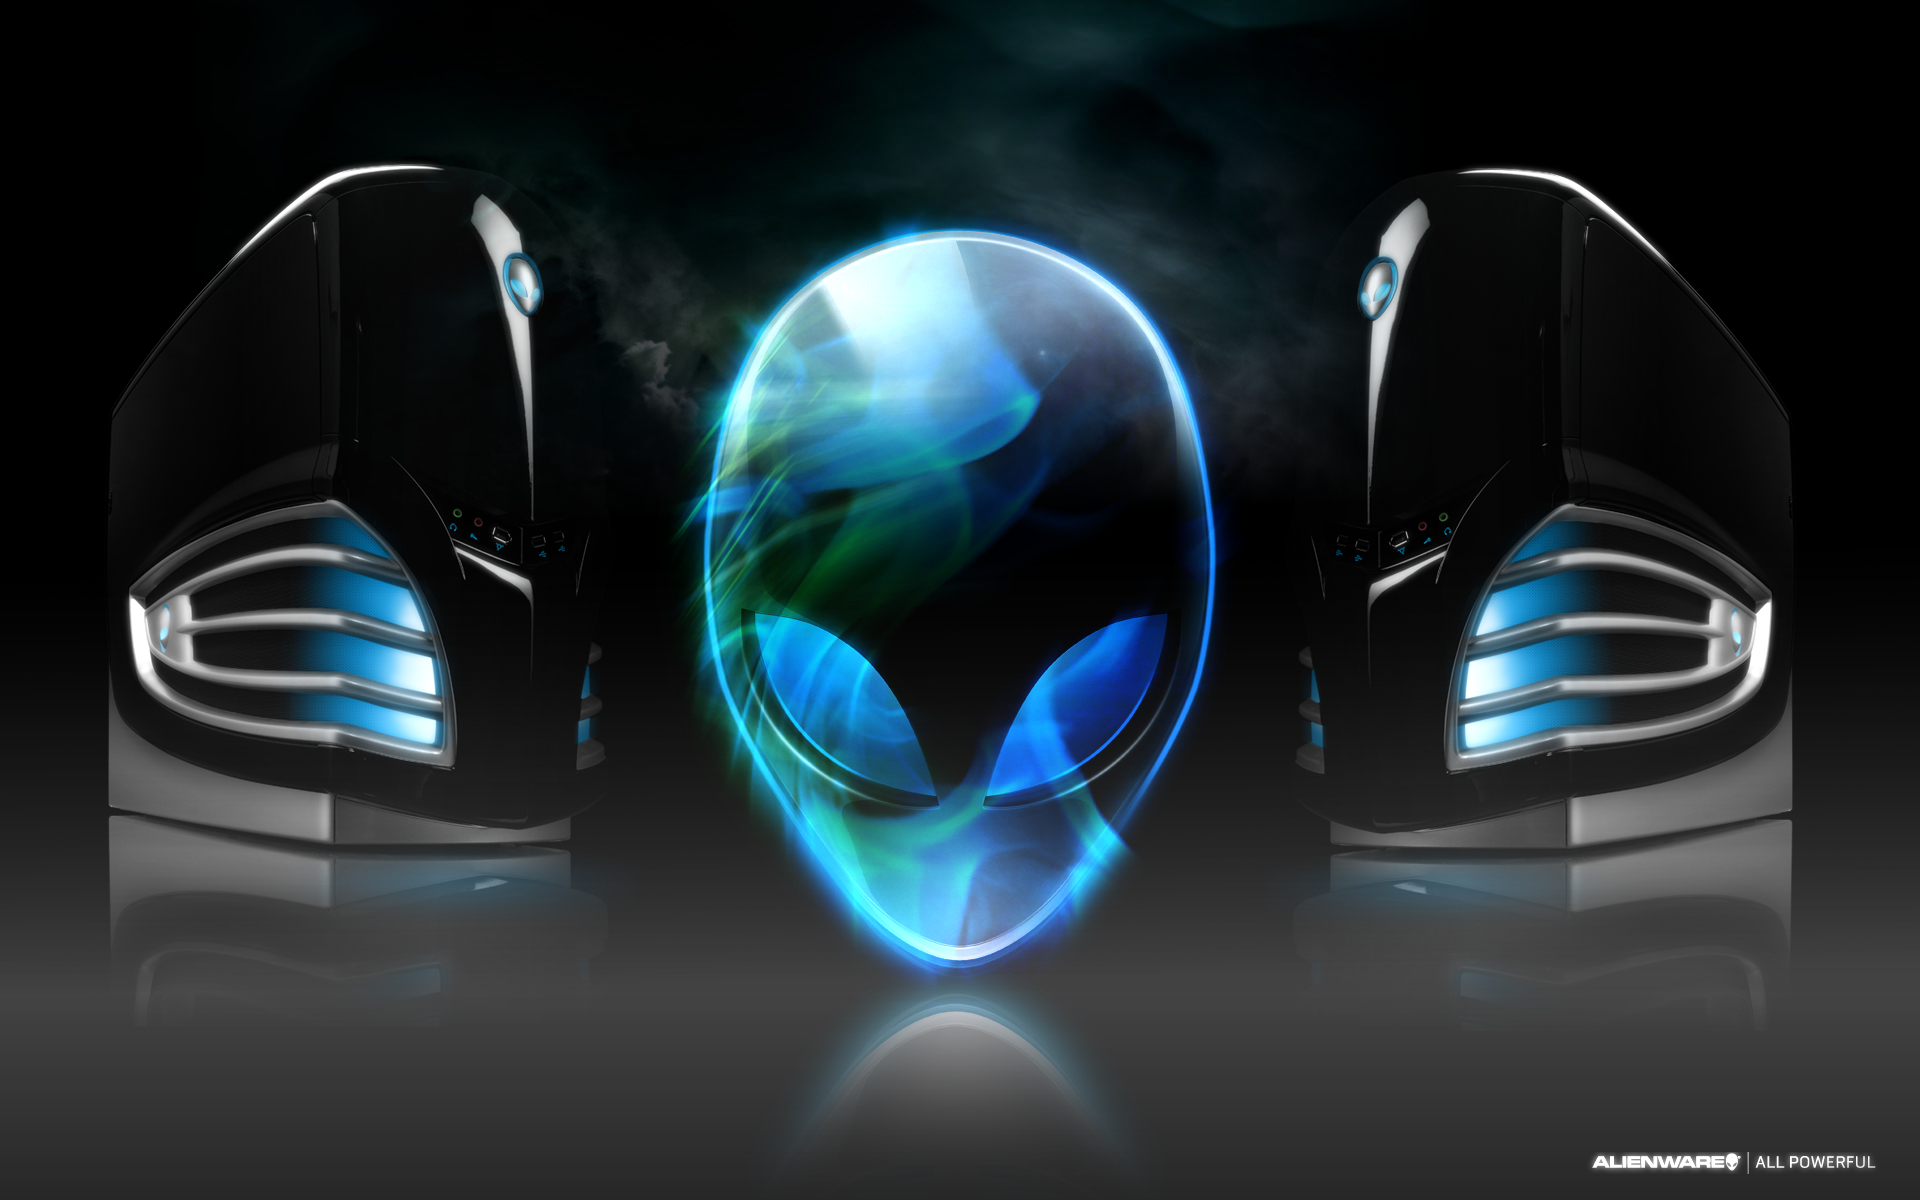 Alienware Wallpaper: Alienware Wallpapers 11